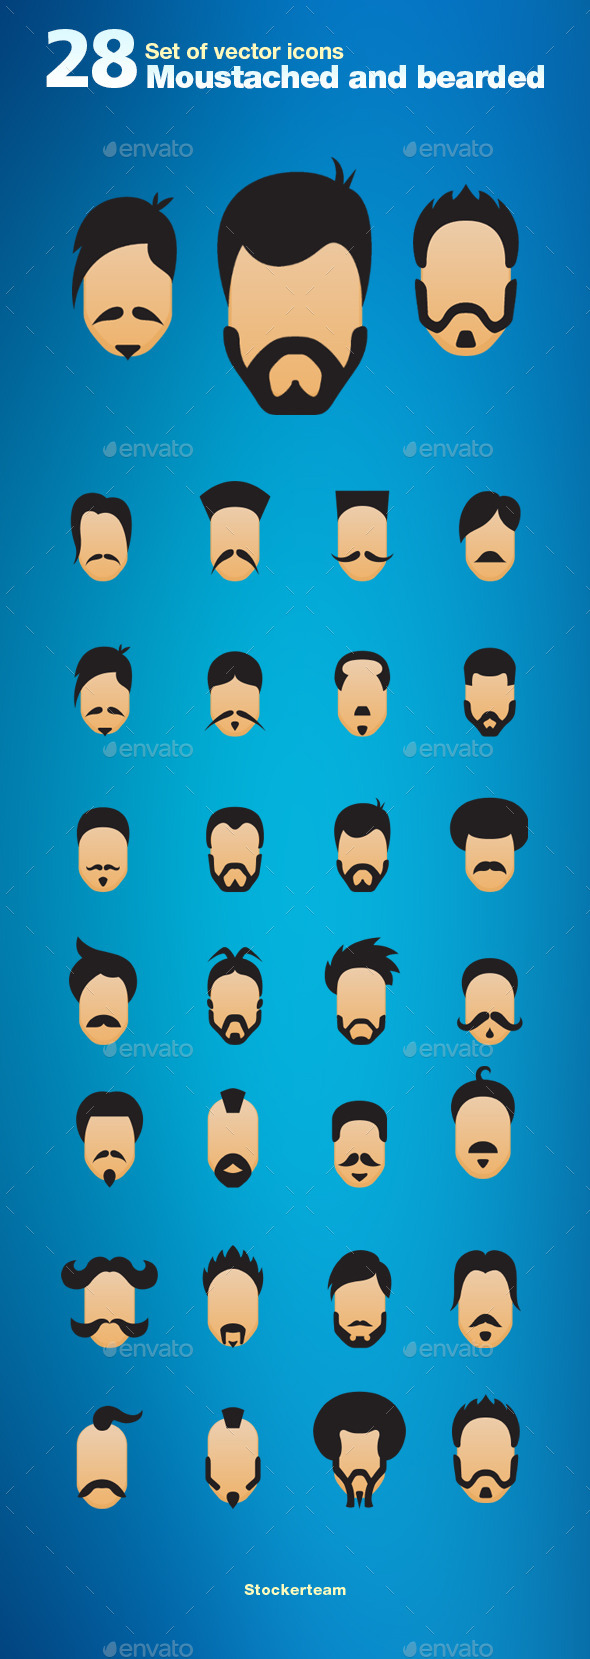 GraphicRiver Set of 28 Moustache and Bearded Icons 9475448